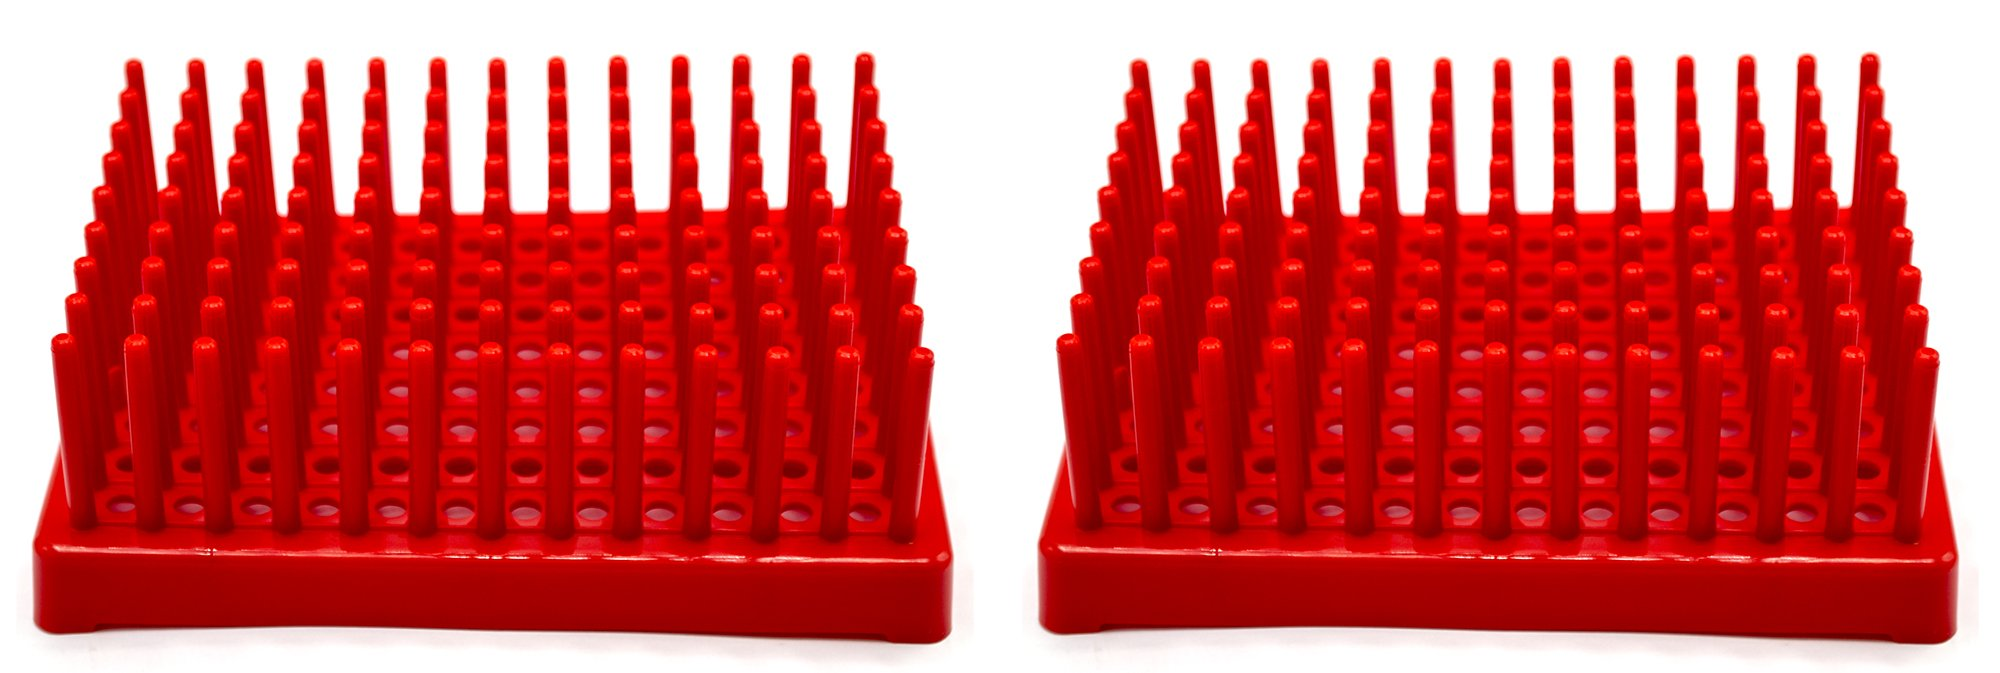 (Pack of 2) Red Plastic Test Tube Peg Drying Rack Holds 96 13mm Test Tubes - Eisco Labs by EISCO